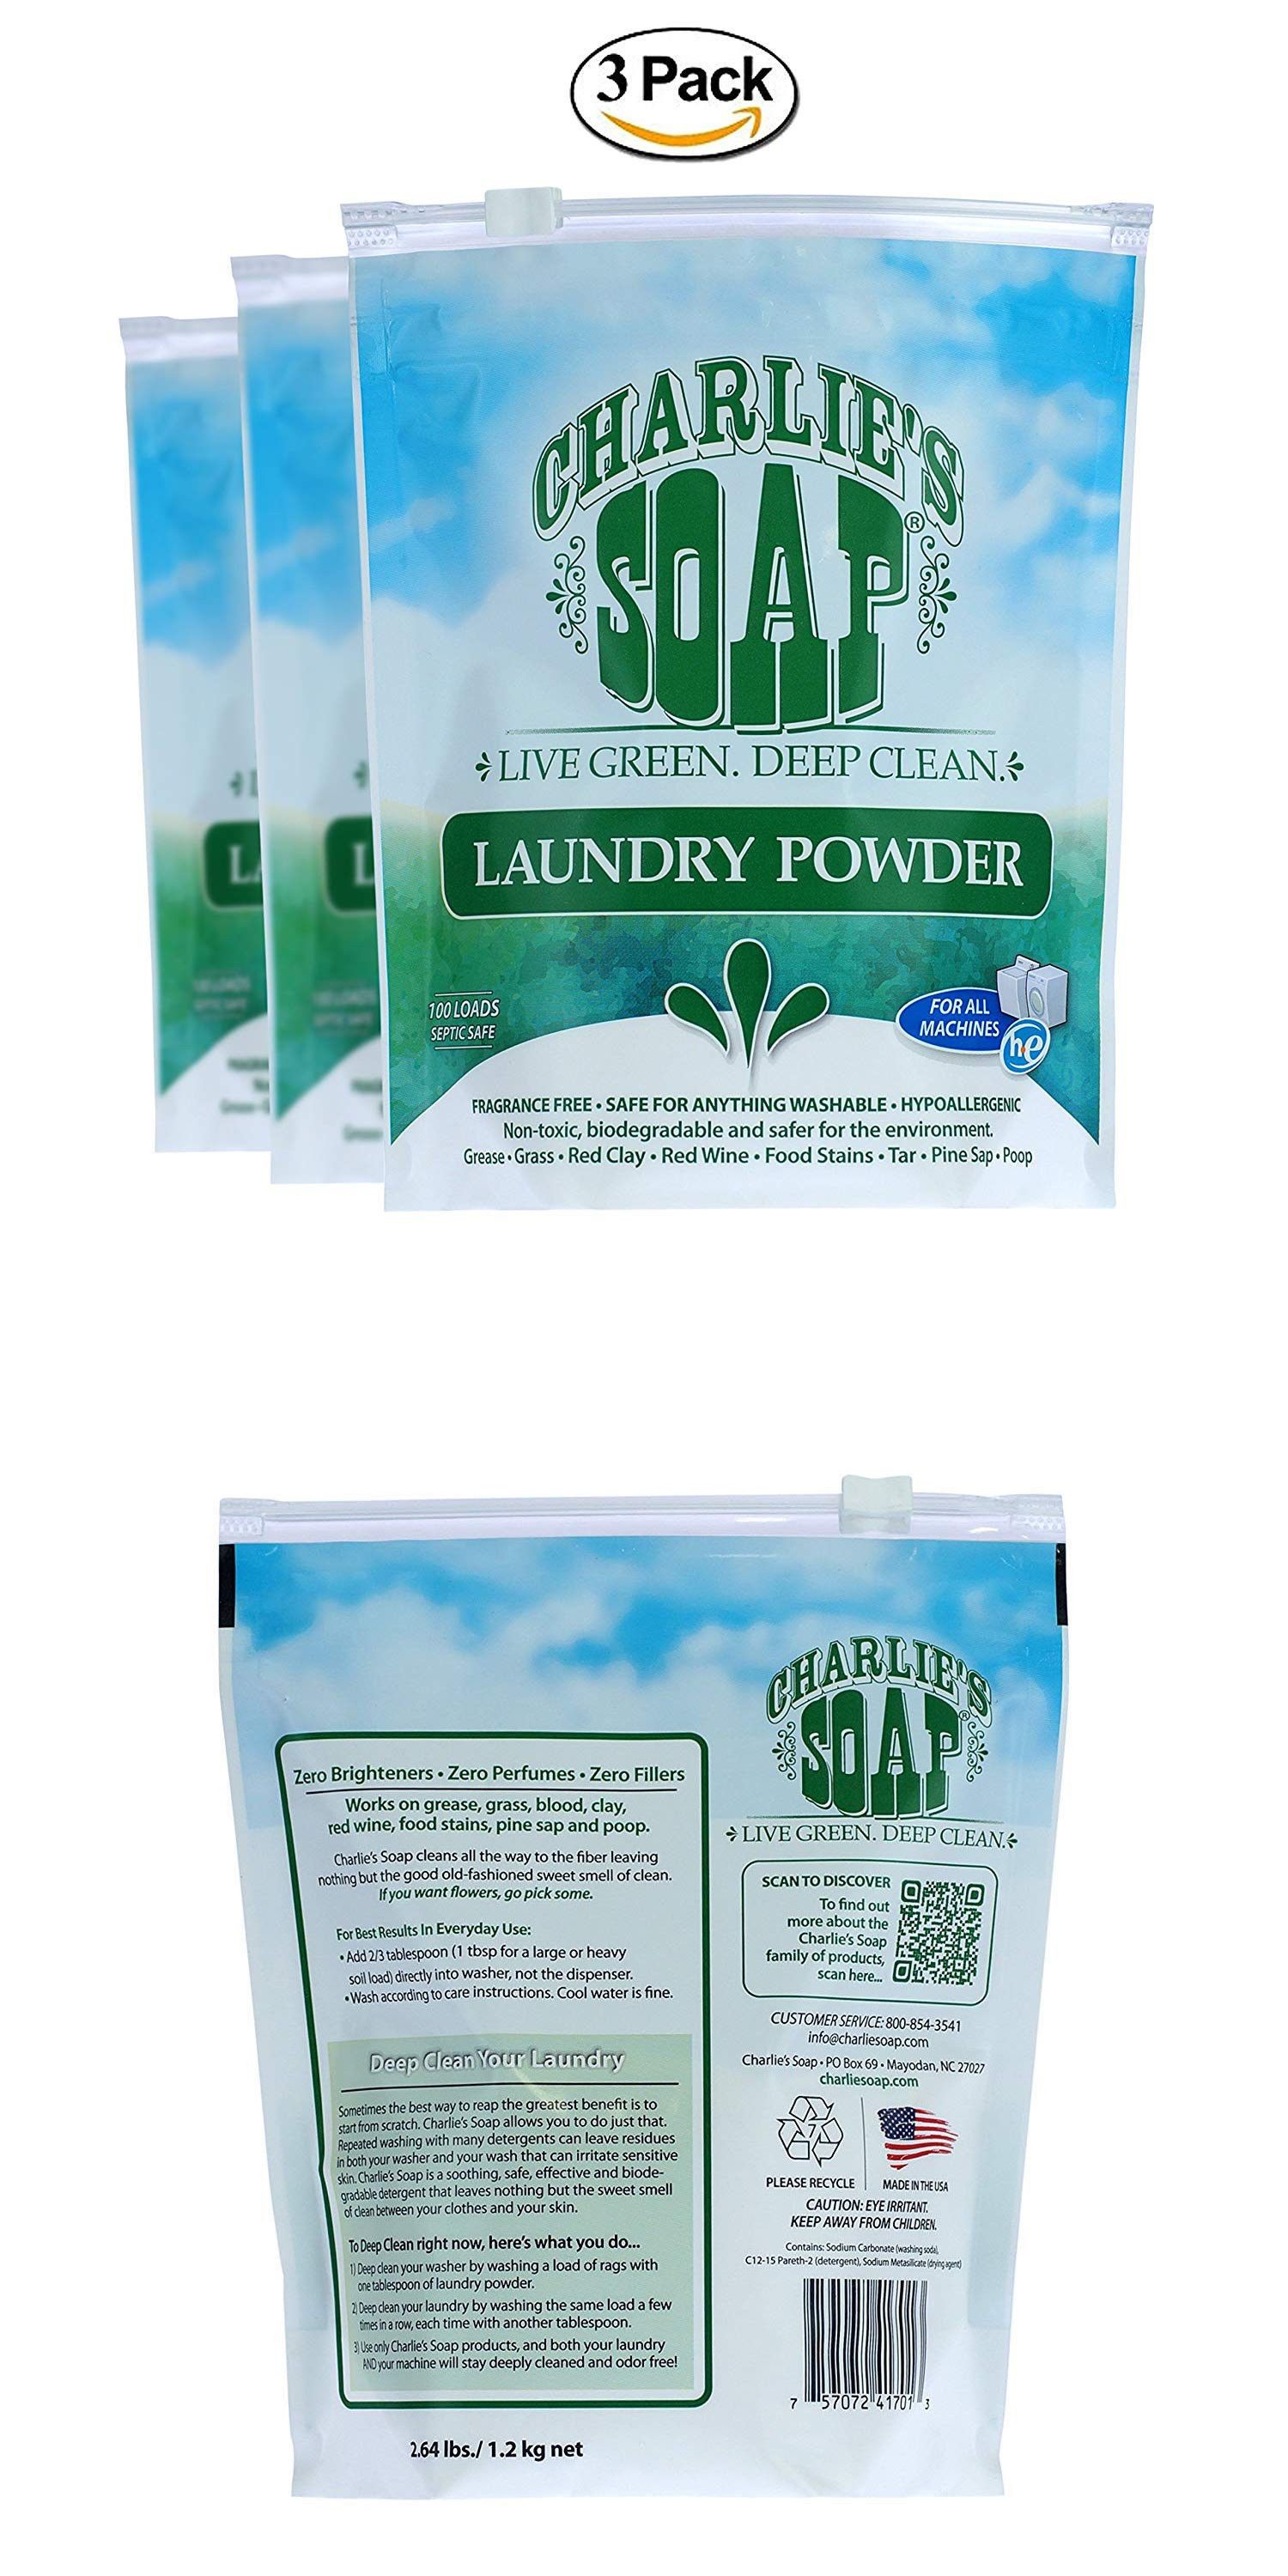 Detergents 78691 300 Loads Charlie S Soap Laundry Powder For